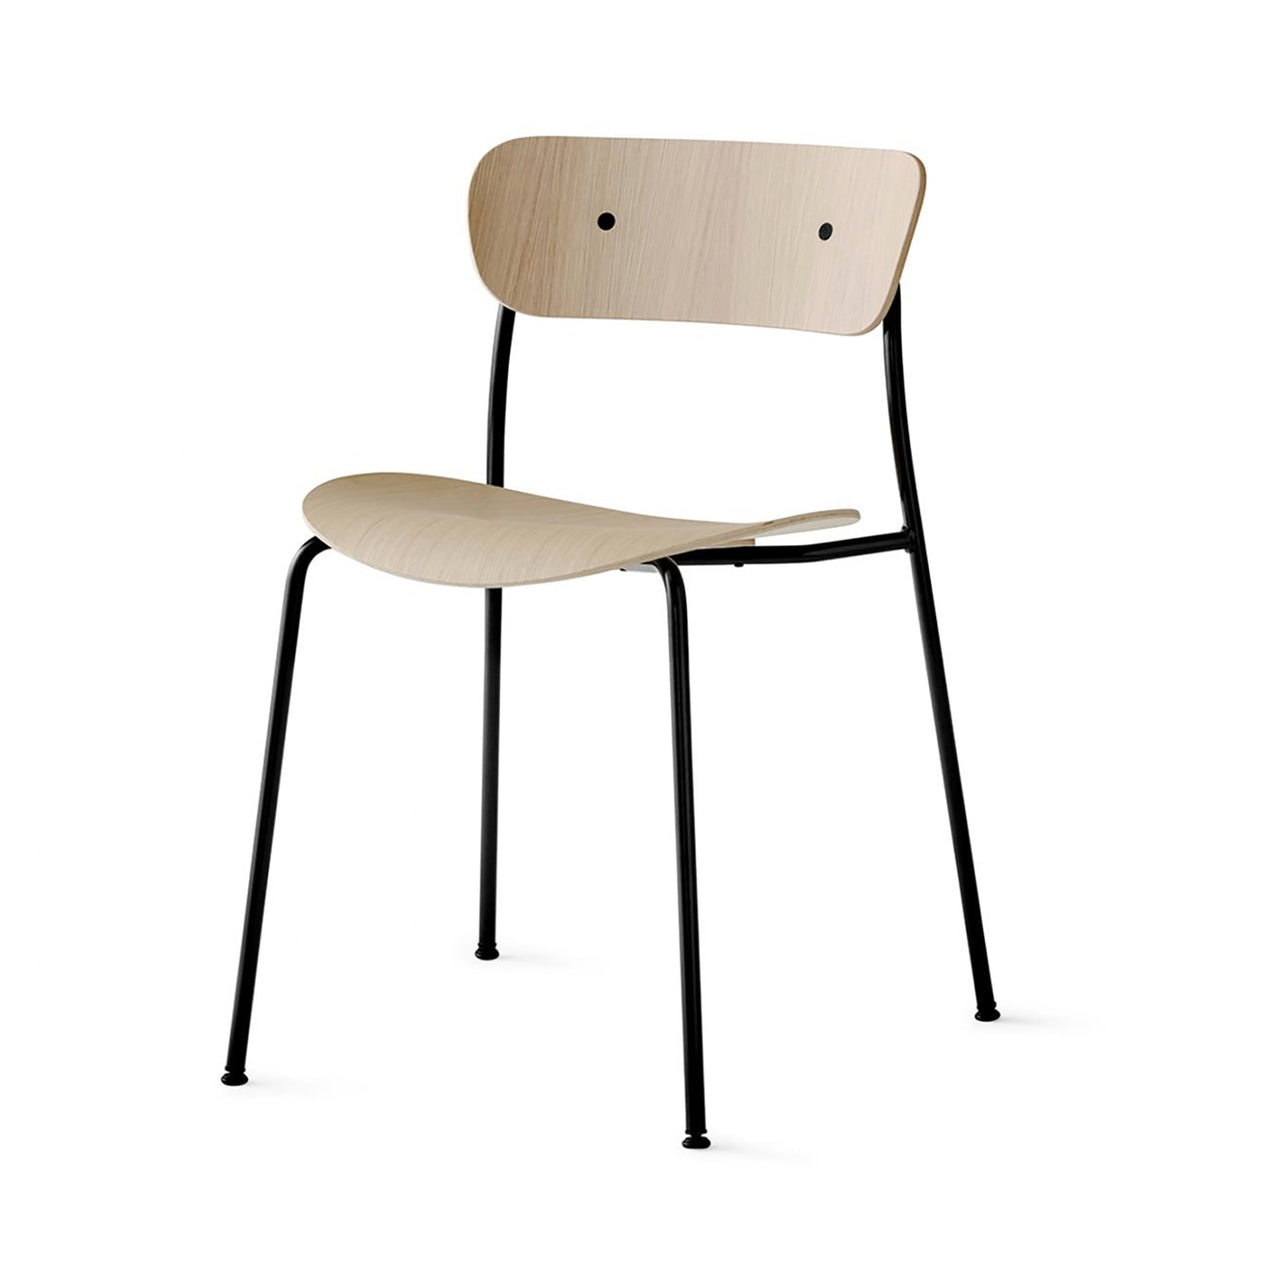 Pavilion Chair AV1: Lacquered Oak